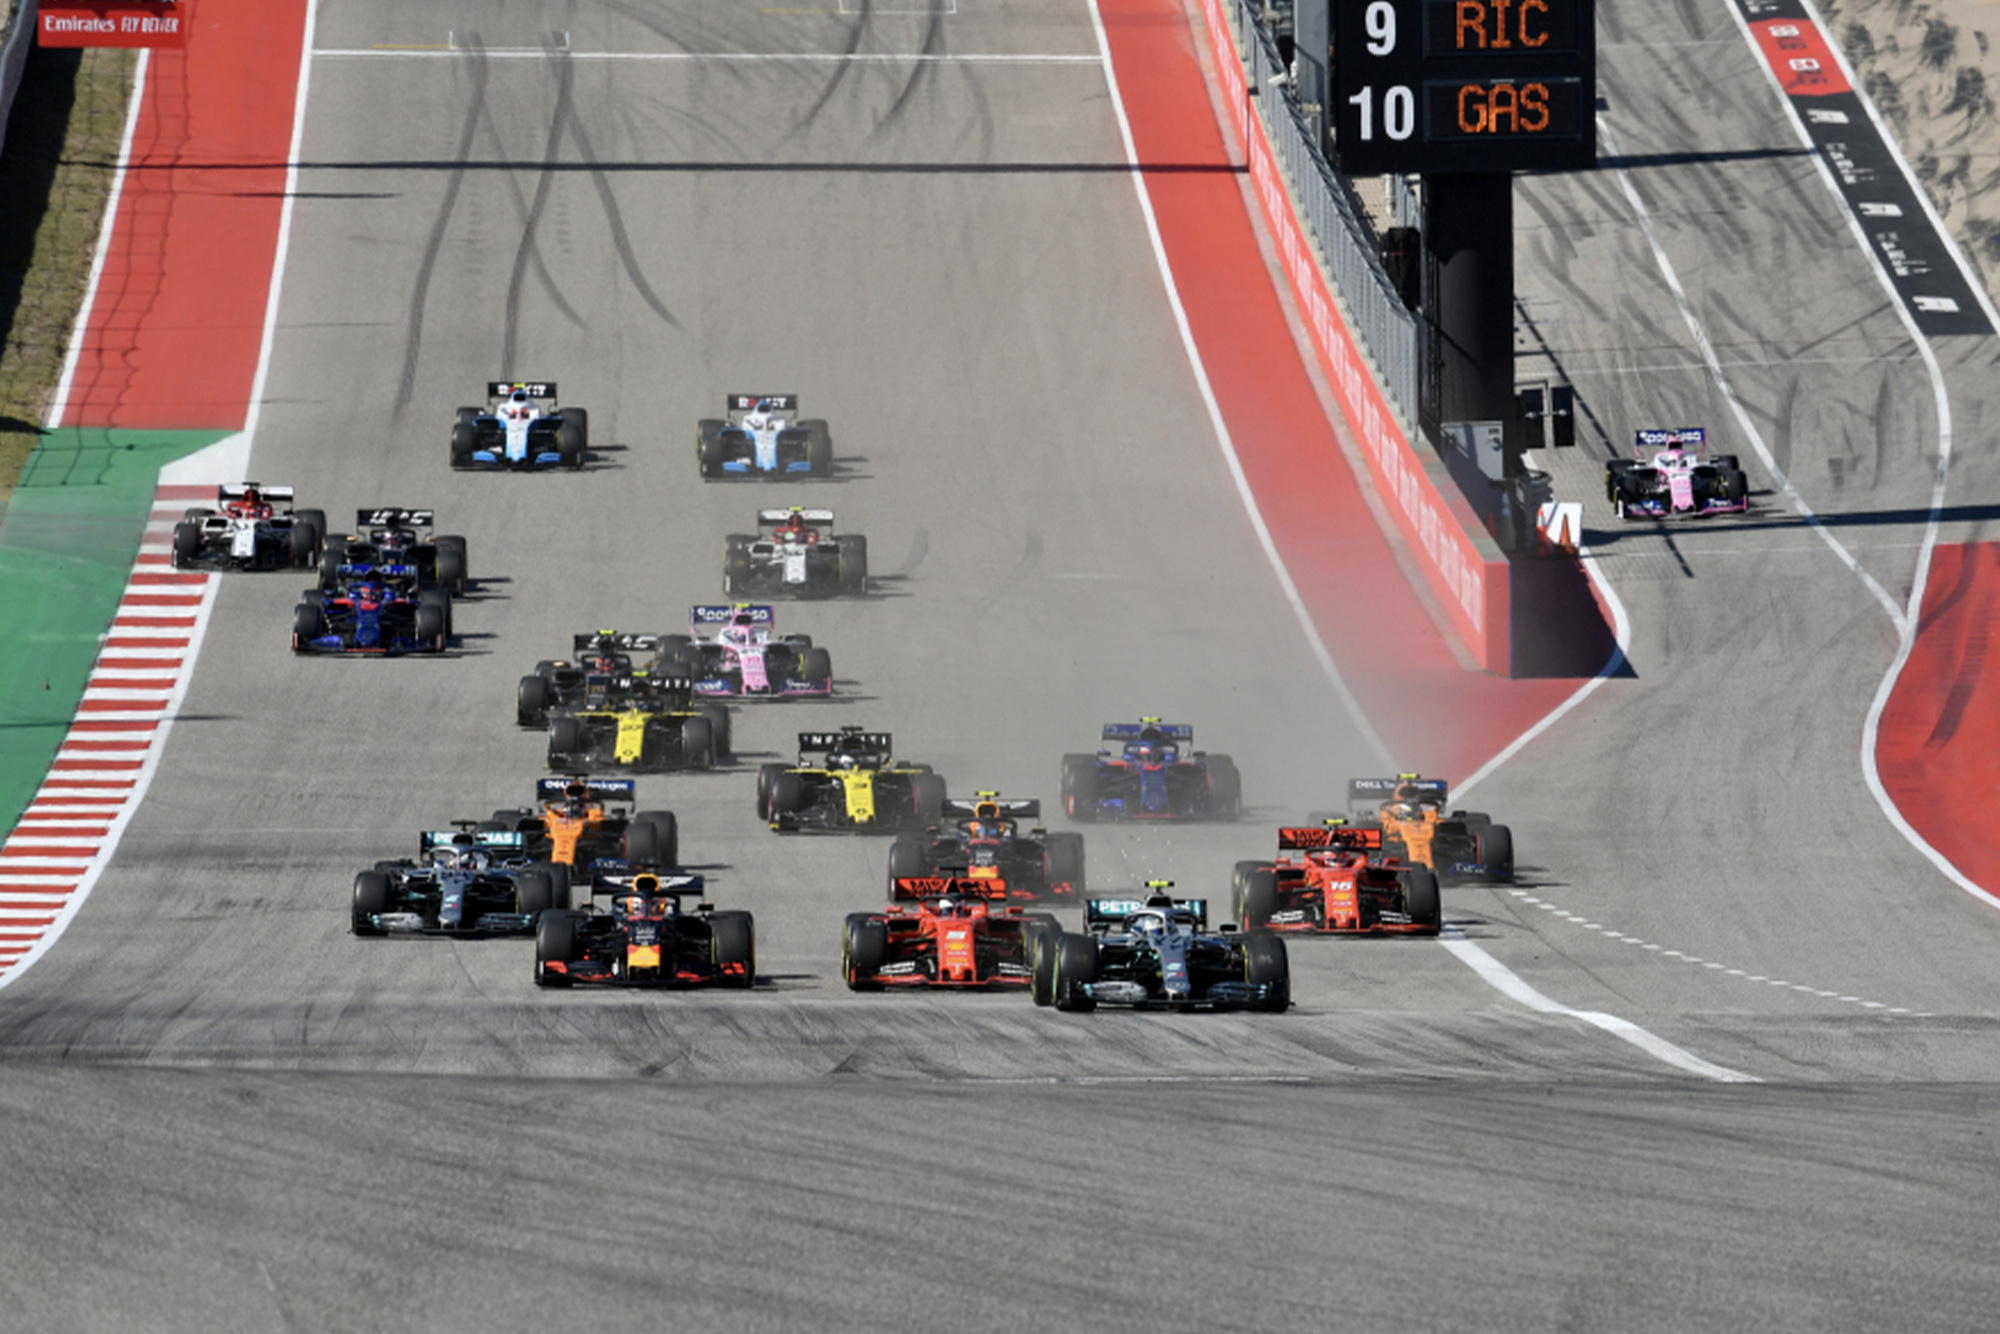 F1 drivers should have more influence according to Stewart